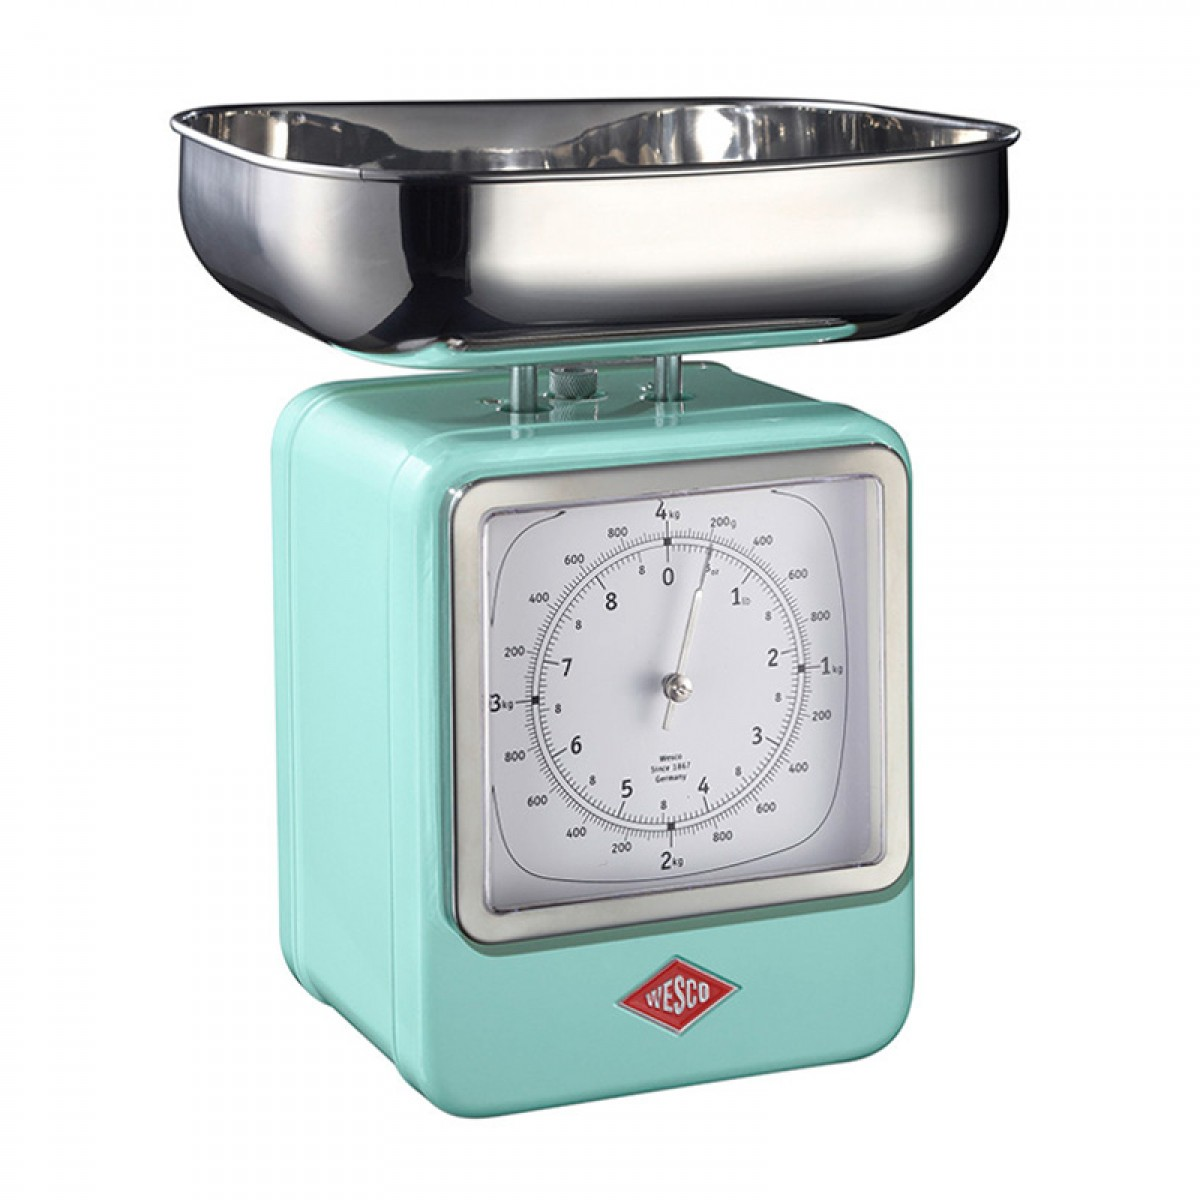 Wesco Retro Scales with Clock (Mint) - Red Candy